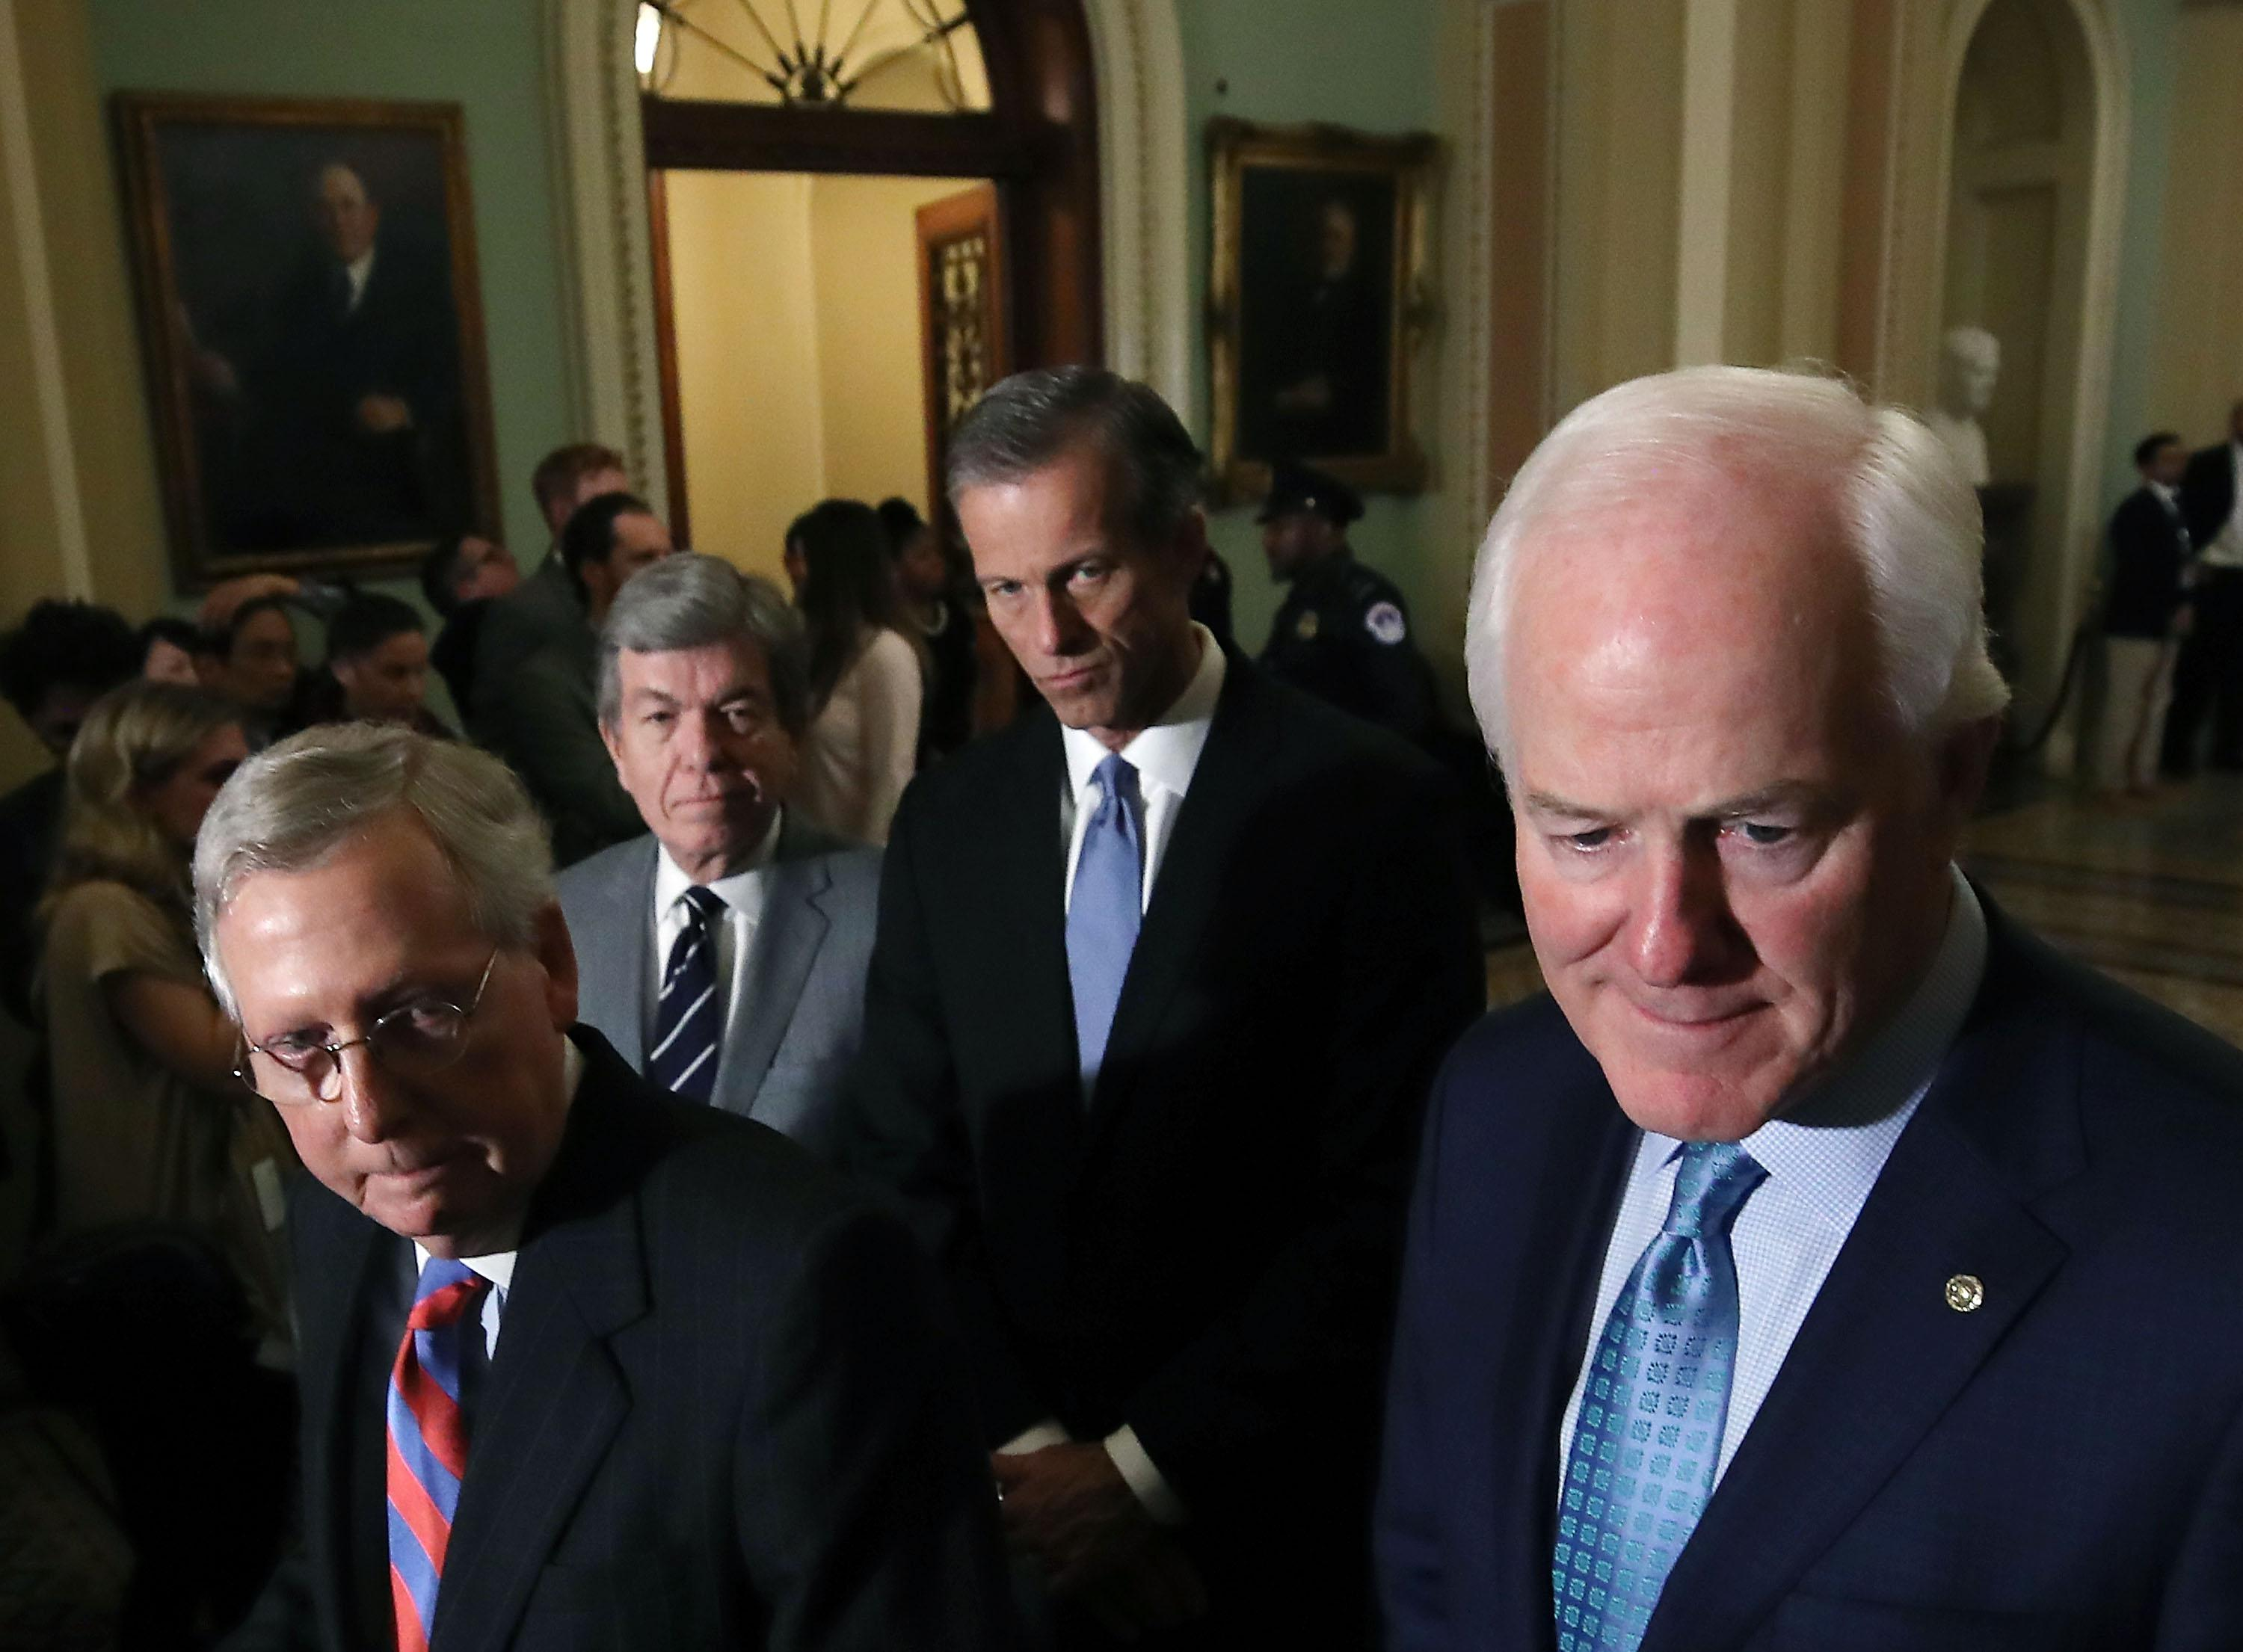 WASHINGTON, DC - DECEMBER 05: (L-R) Senate Majority Leader Mitch McConnell (R-KY), Sen. Roy Blunt (R-MO), Sen. John Thune (R-SD), and Sen. John Cornyn (R-TX) listen to reporters questions about the tax reform bill the Senate passed last week, at US Capitol on december 5, 2017 in Washington, DC.  (Photo by Mark Wilson/Getty Images)